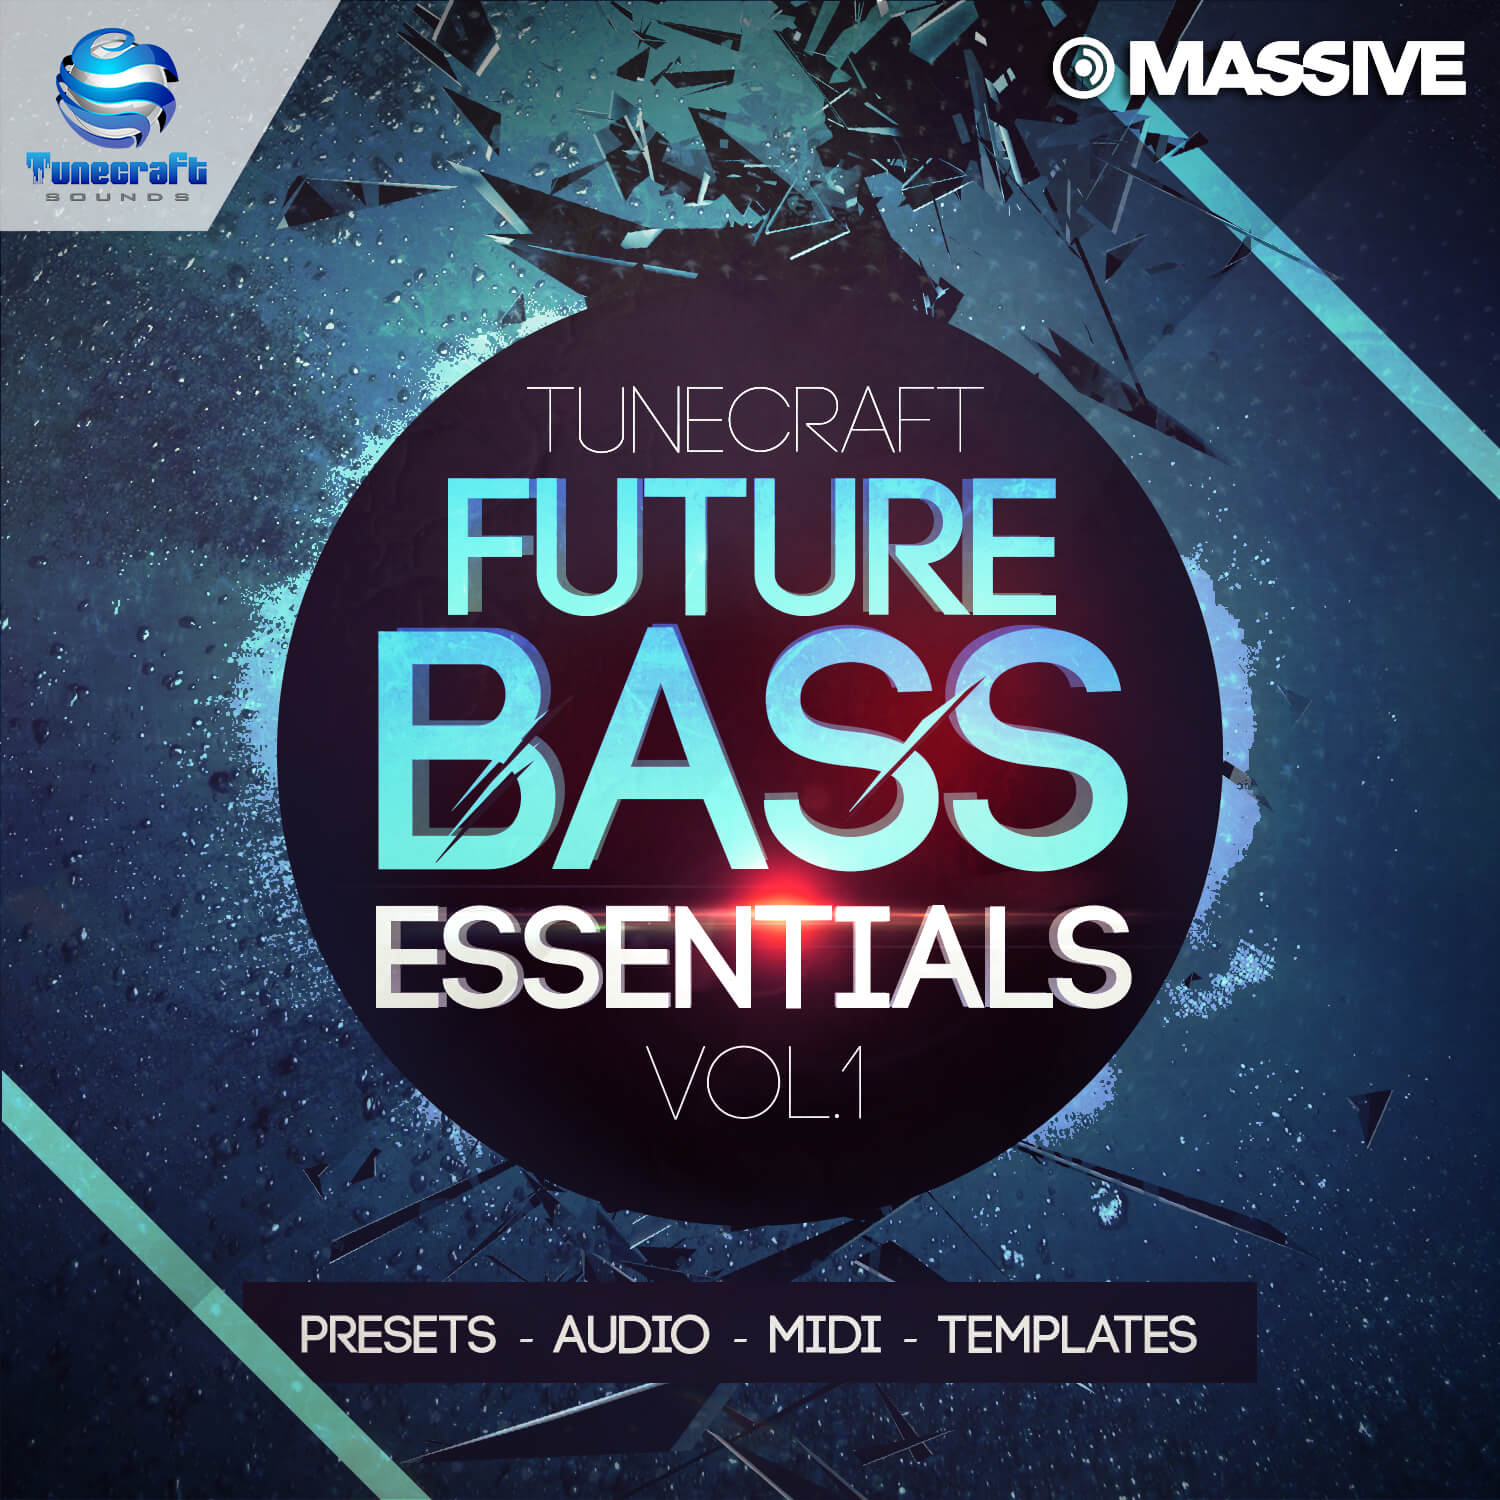 Tunecraft Future Bass Essentials Vol.1